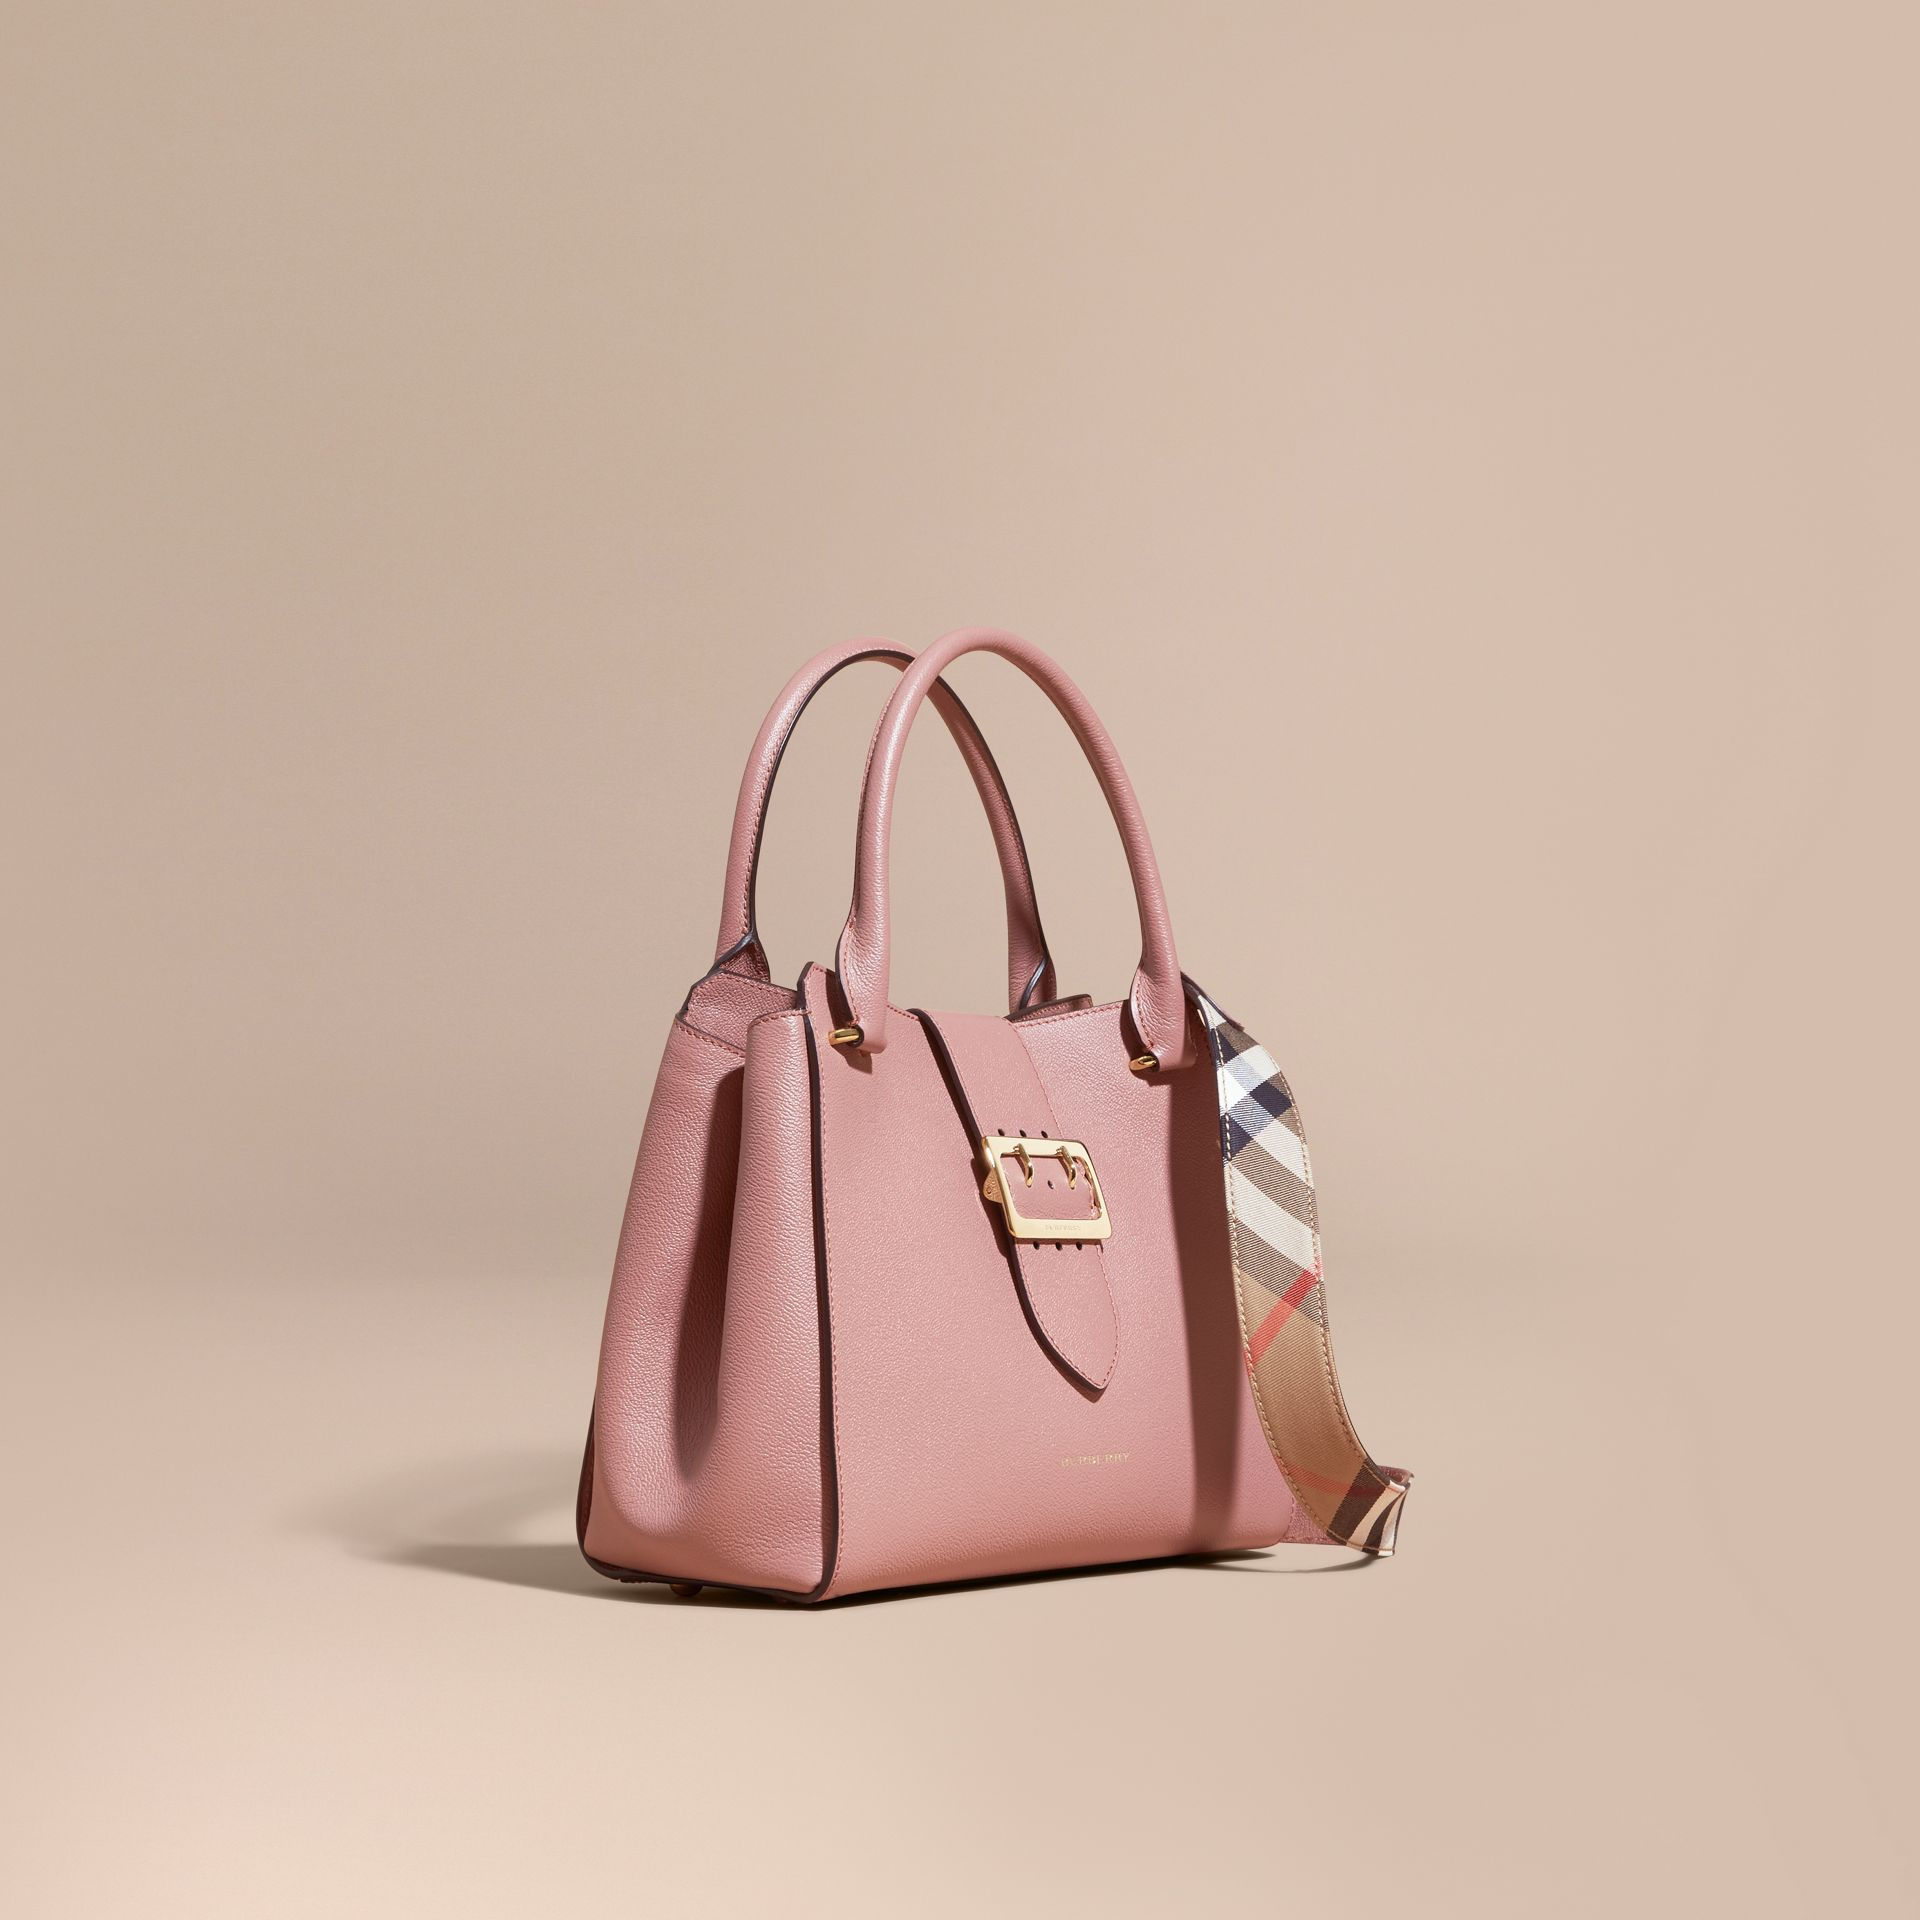 The Medium Buckle Tote in Grainy Leather in Dusty Pink - gallery image 1